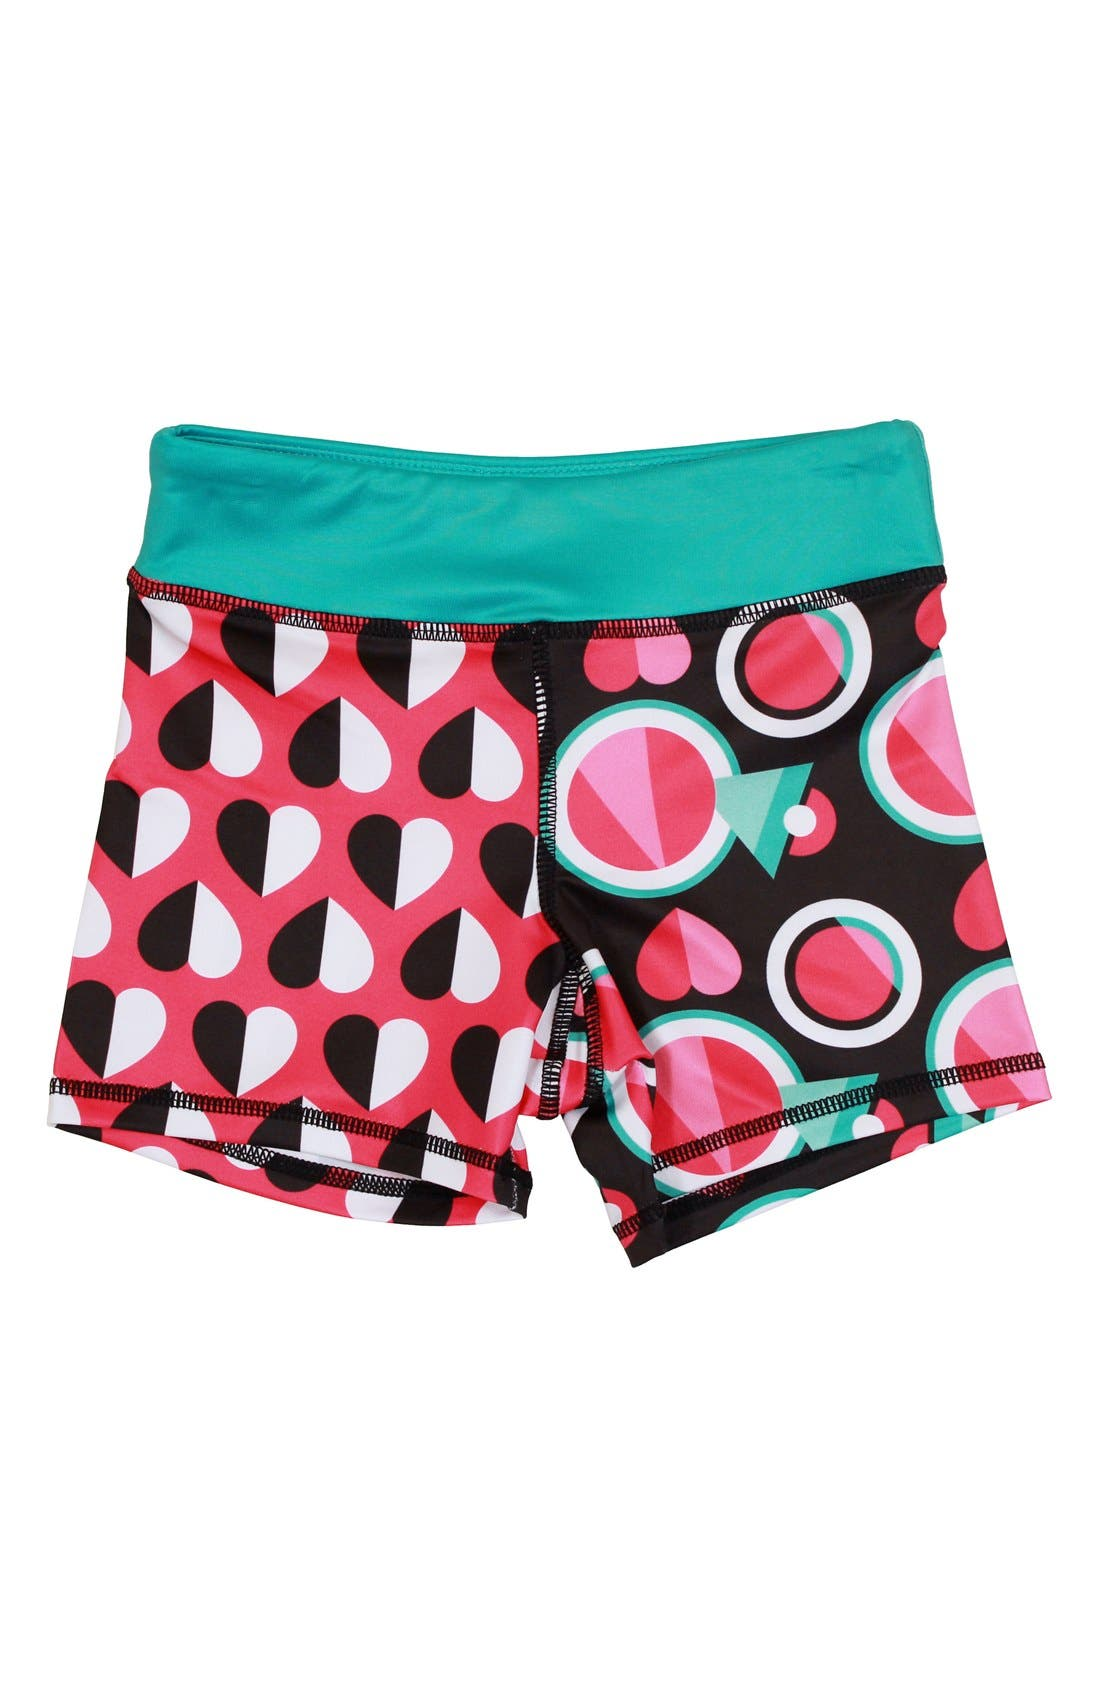 Main Image - CHOOZE 'Splits' Mixed Print Shorts (Little Girls & Big Girls)